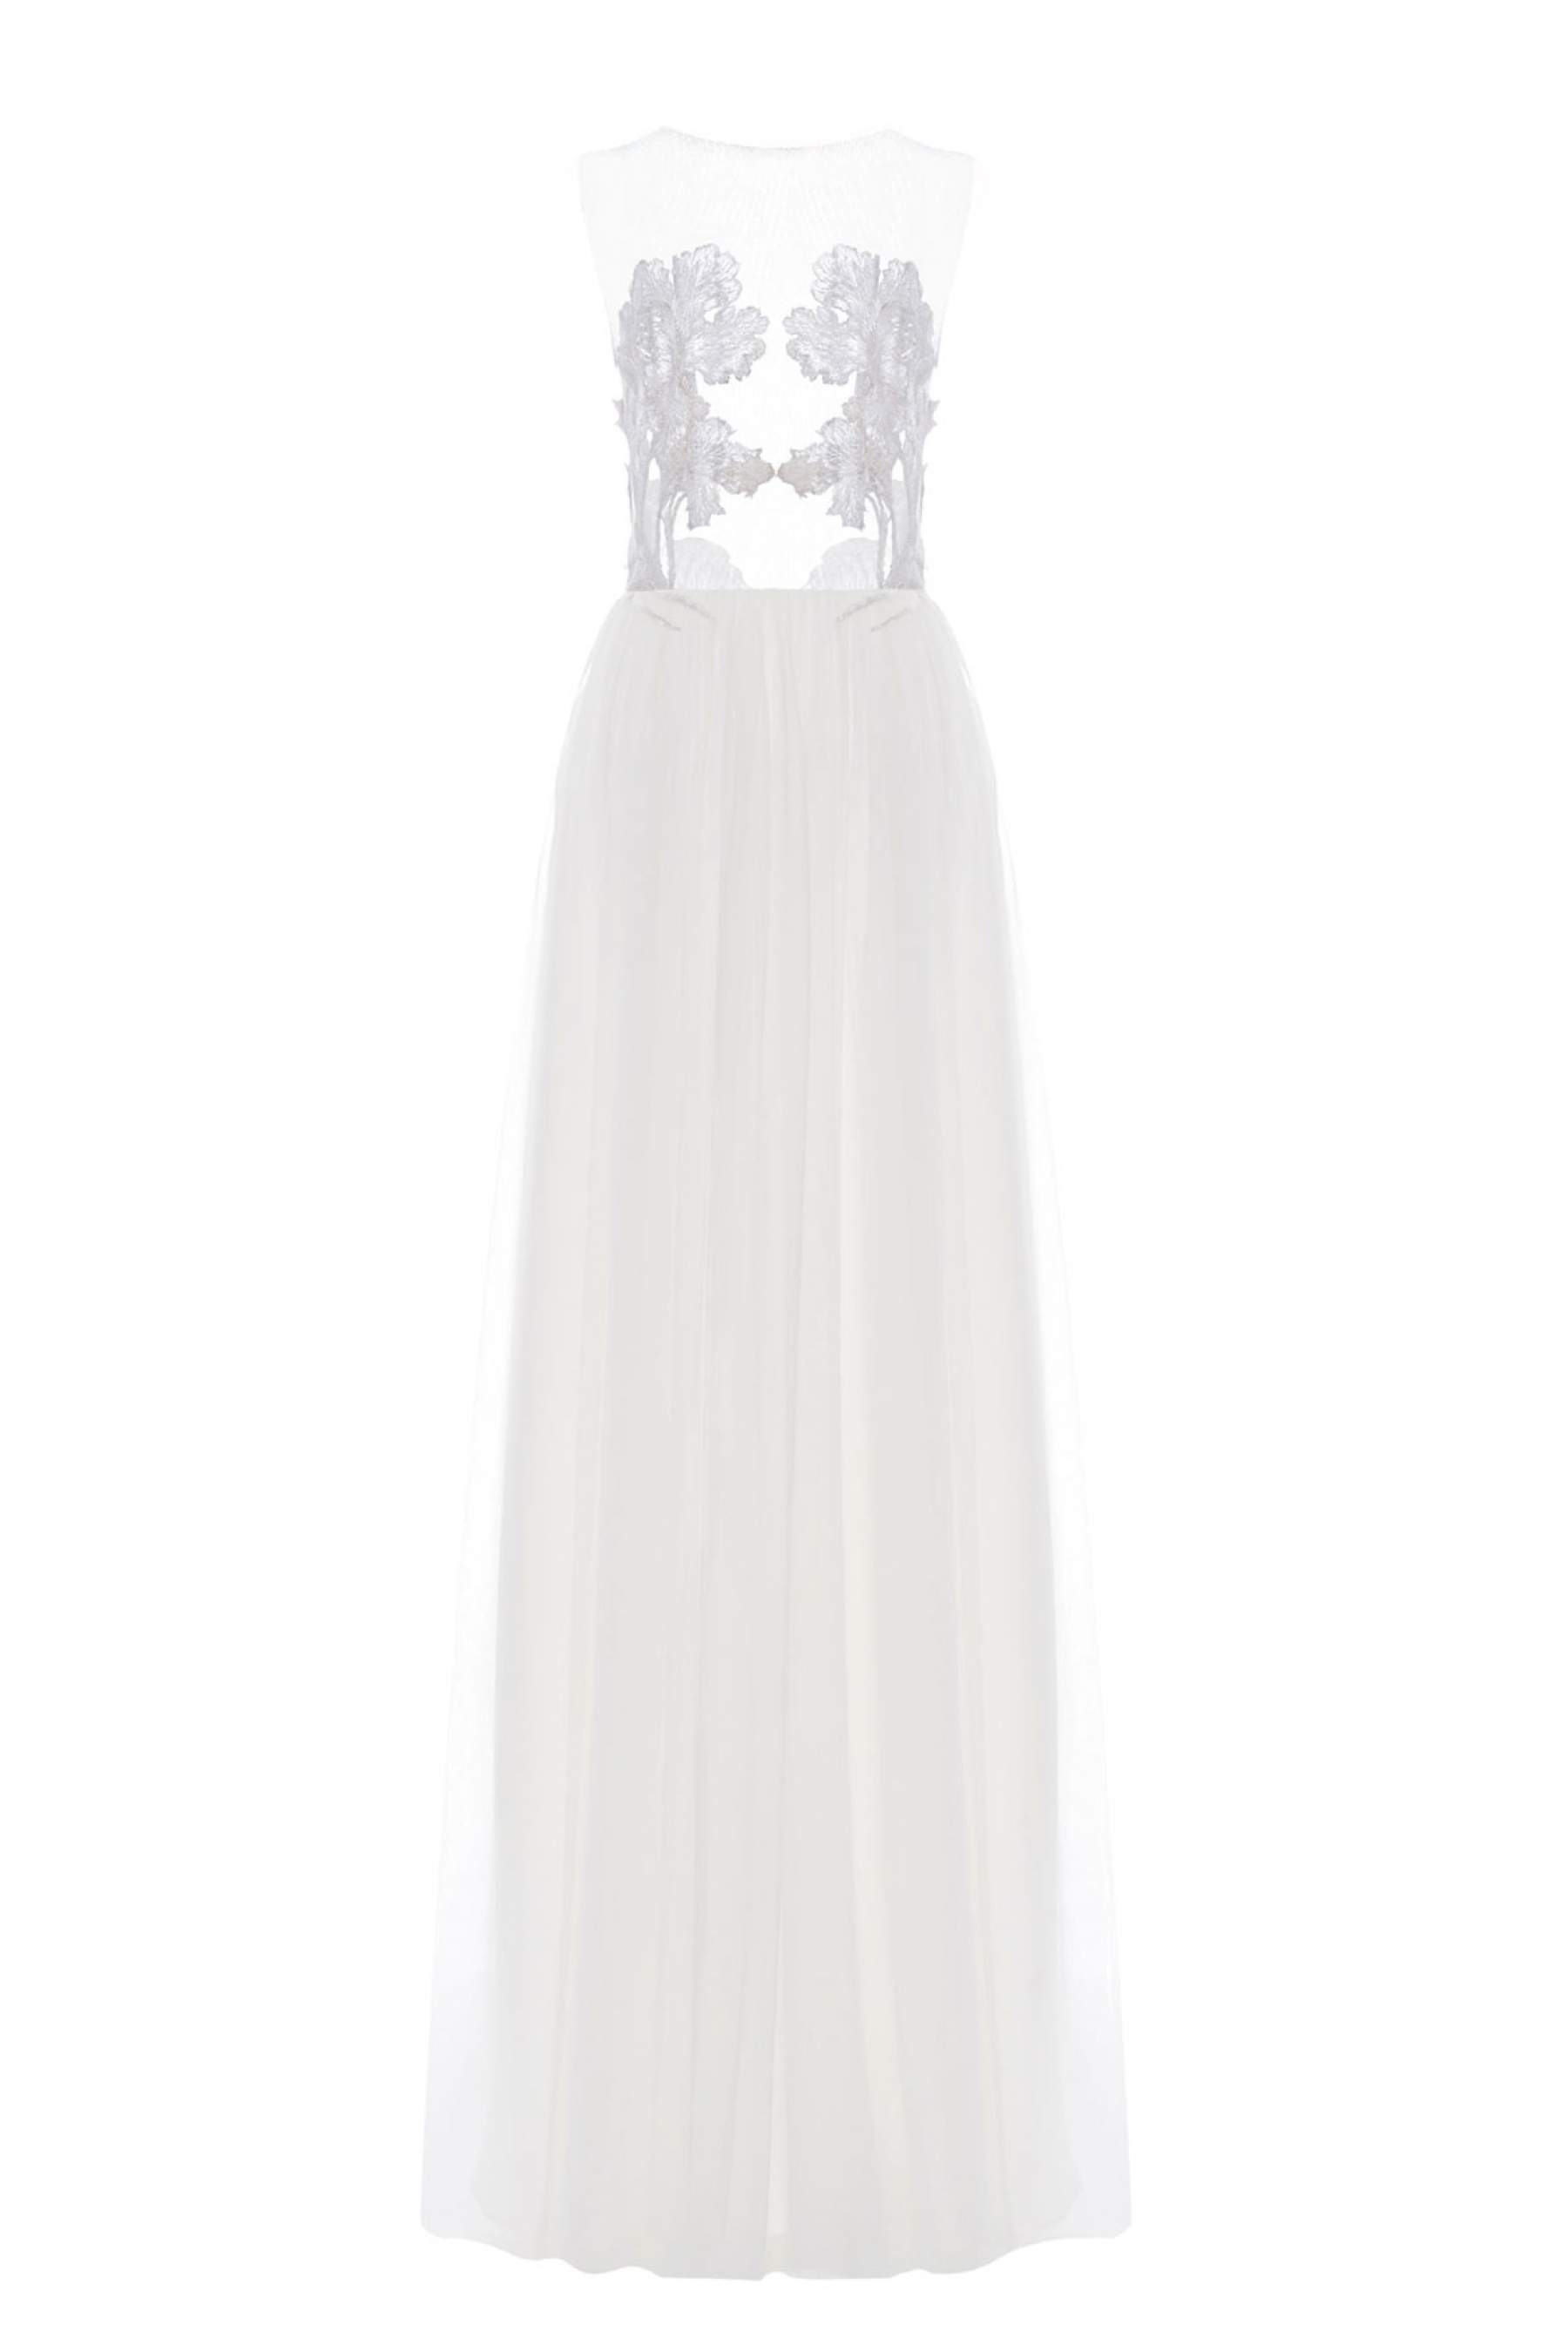 Designer Brautkleid White Iris Illusion Dress von Kaviar Gauche